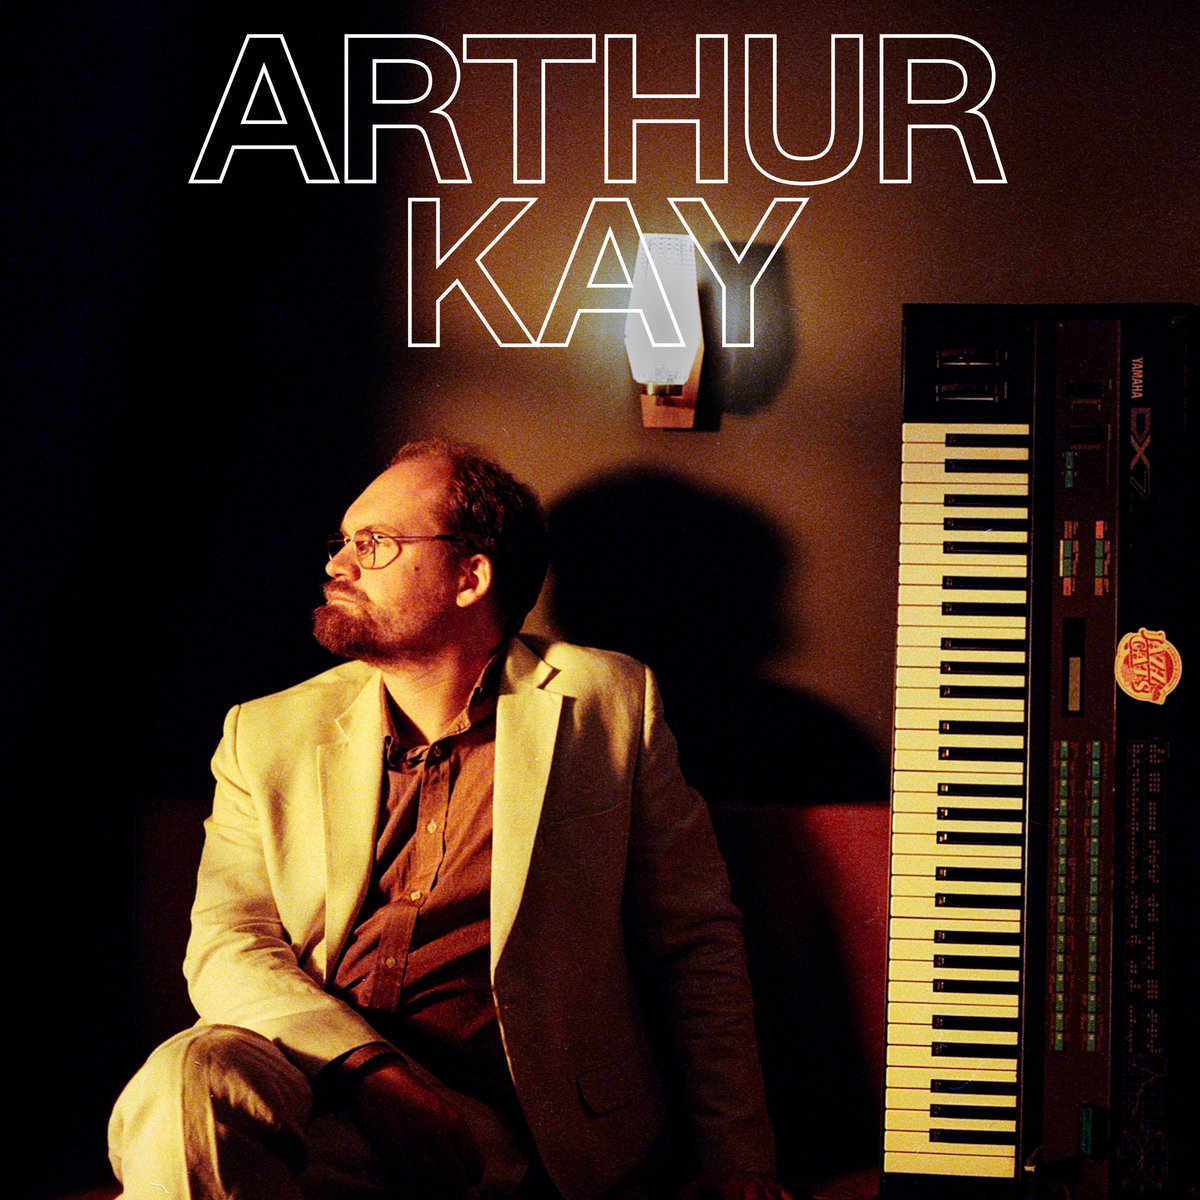 Album of the Week: Arthur Kay – Arthur Kay